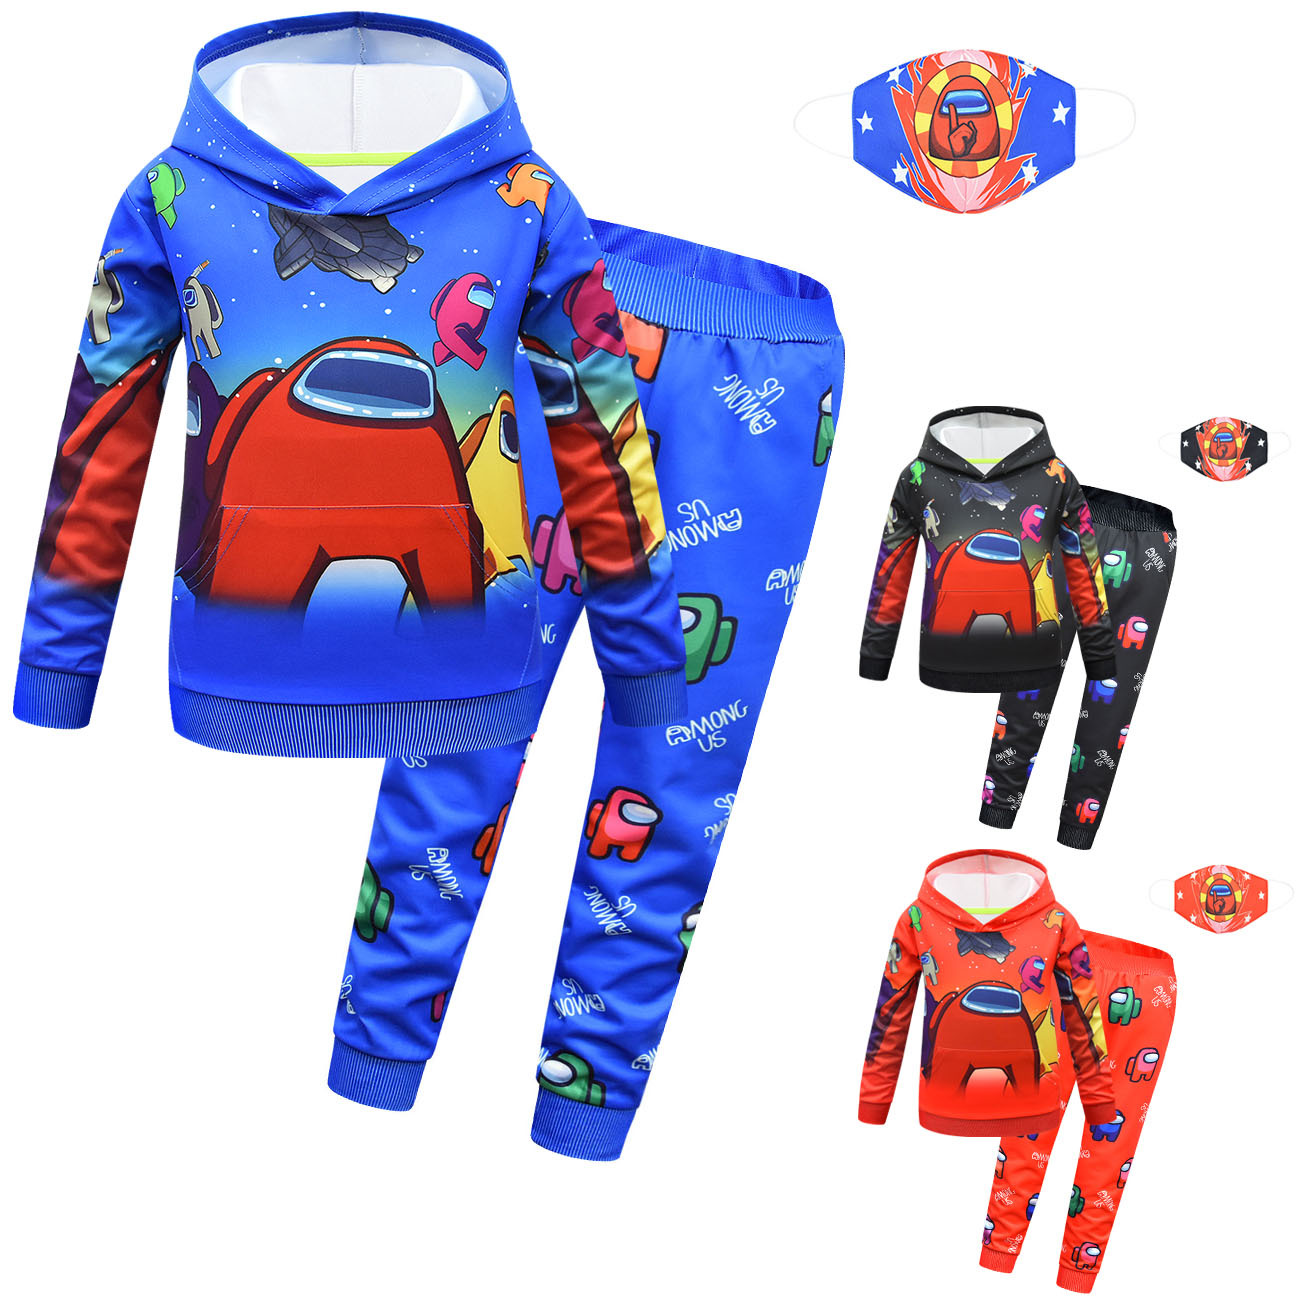 Sweater Boy Hooded Sweater Hooded Trousers Set Of Three